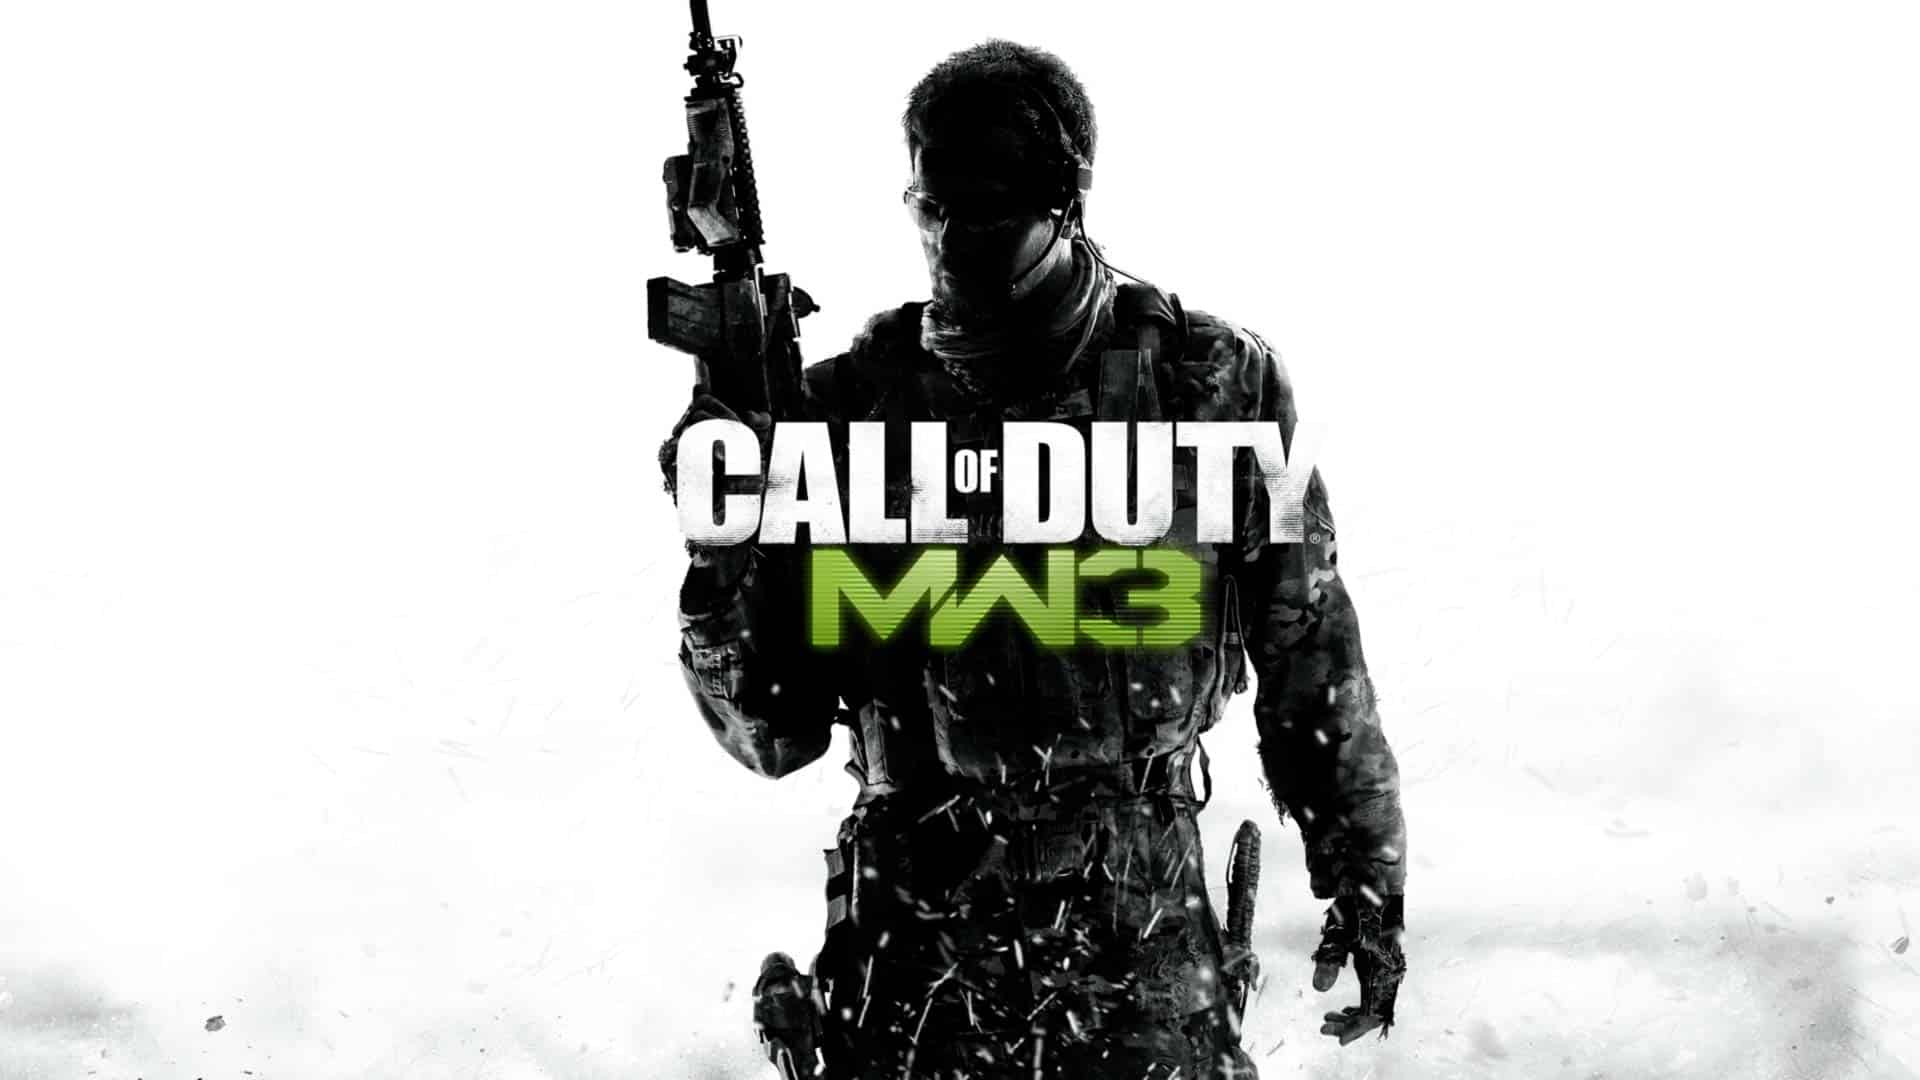 Call Of Duty Modern Warfare 3 Free Download Full Version Gaming News Analyst